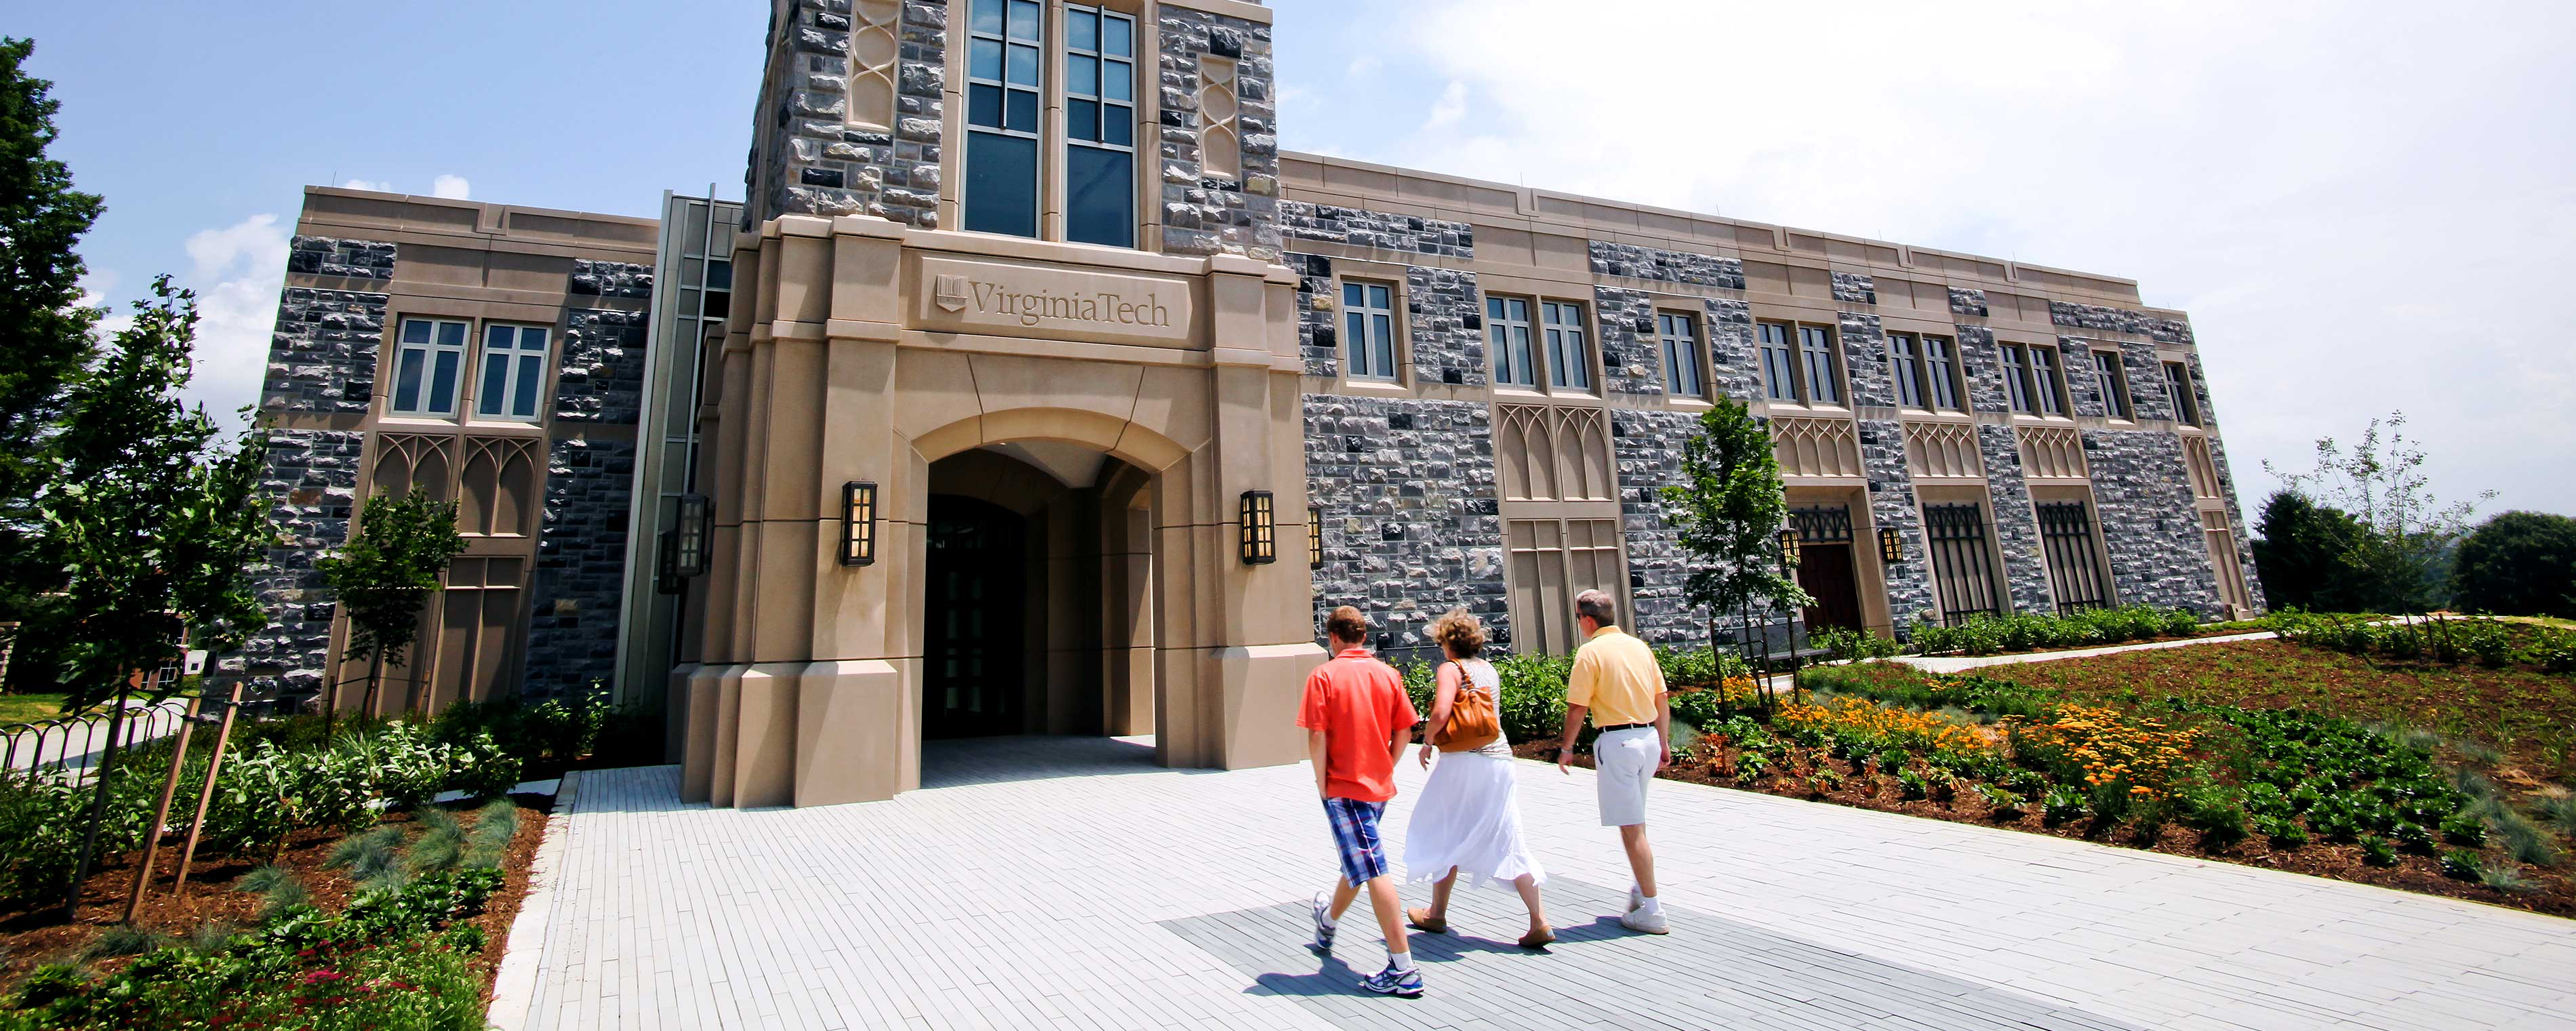 A family walks into the Admissions Building